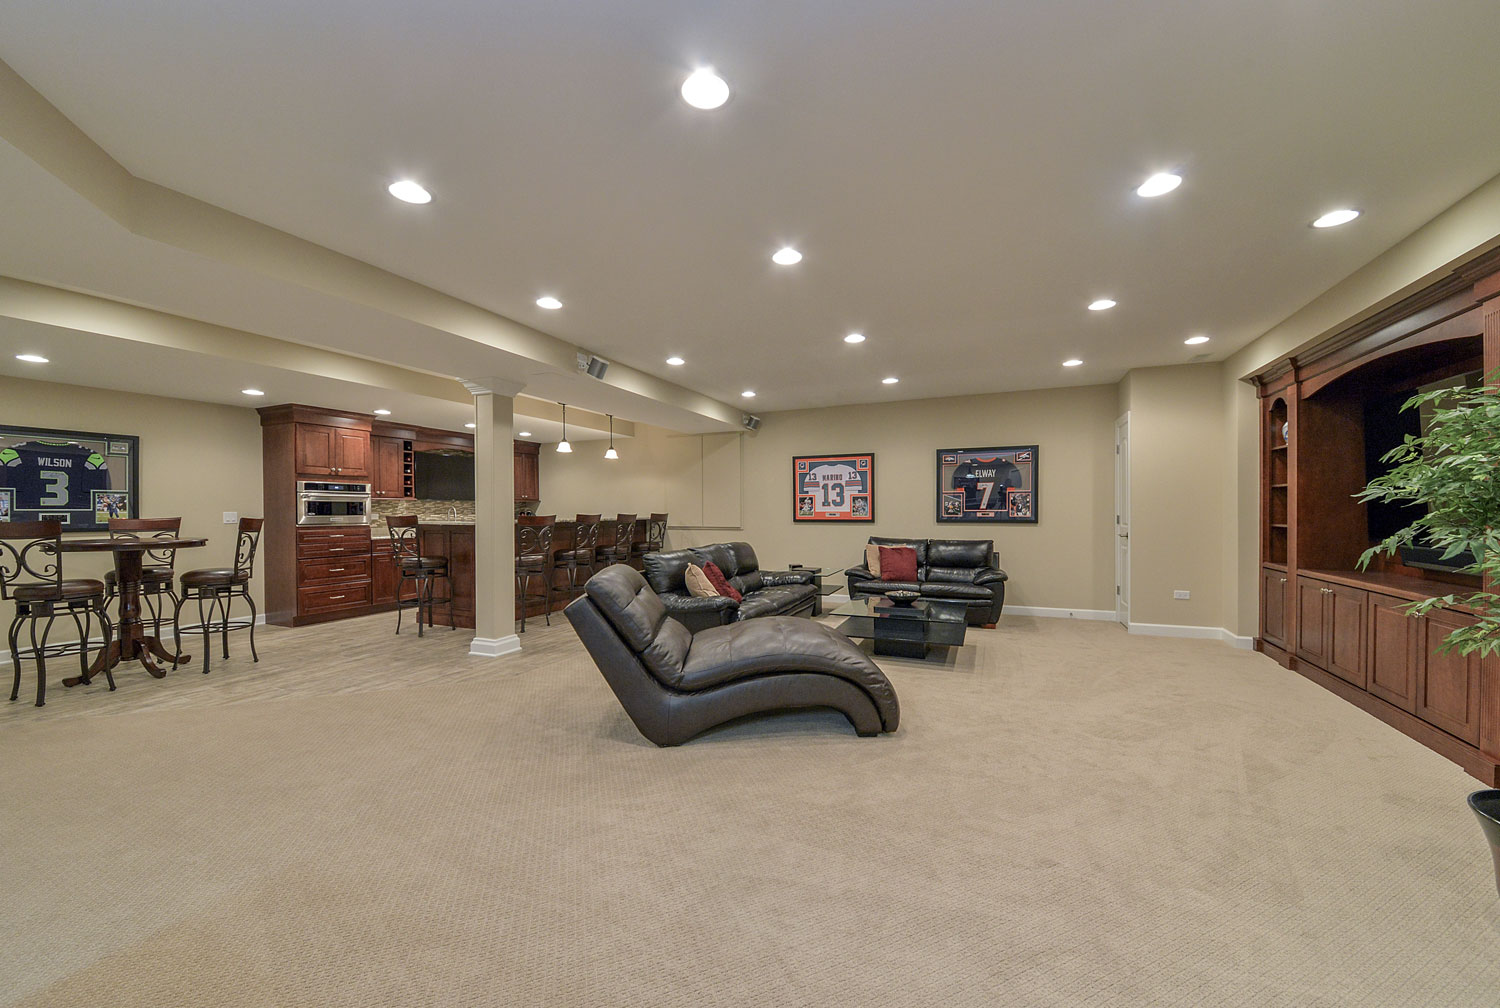 eric amp mariam s basement pictures home remodeling 10988